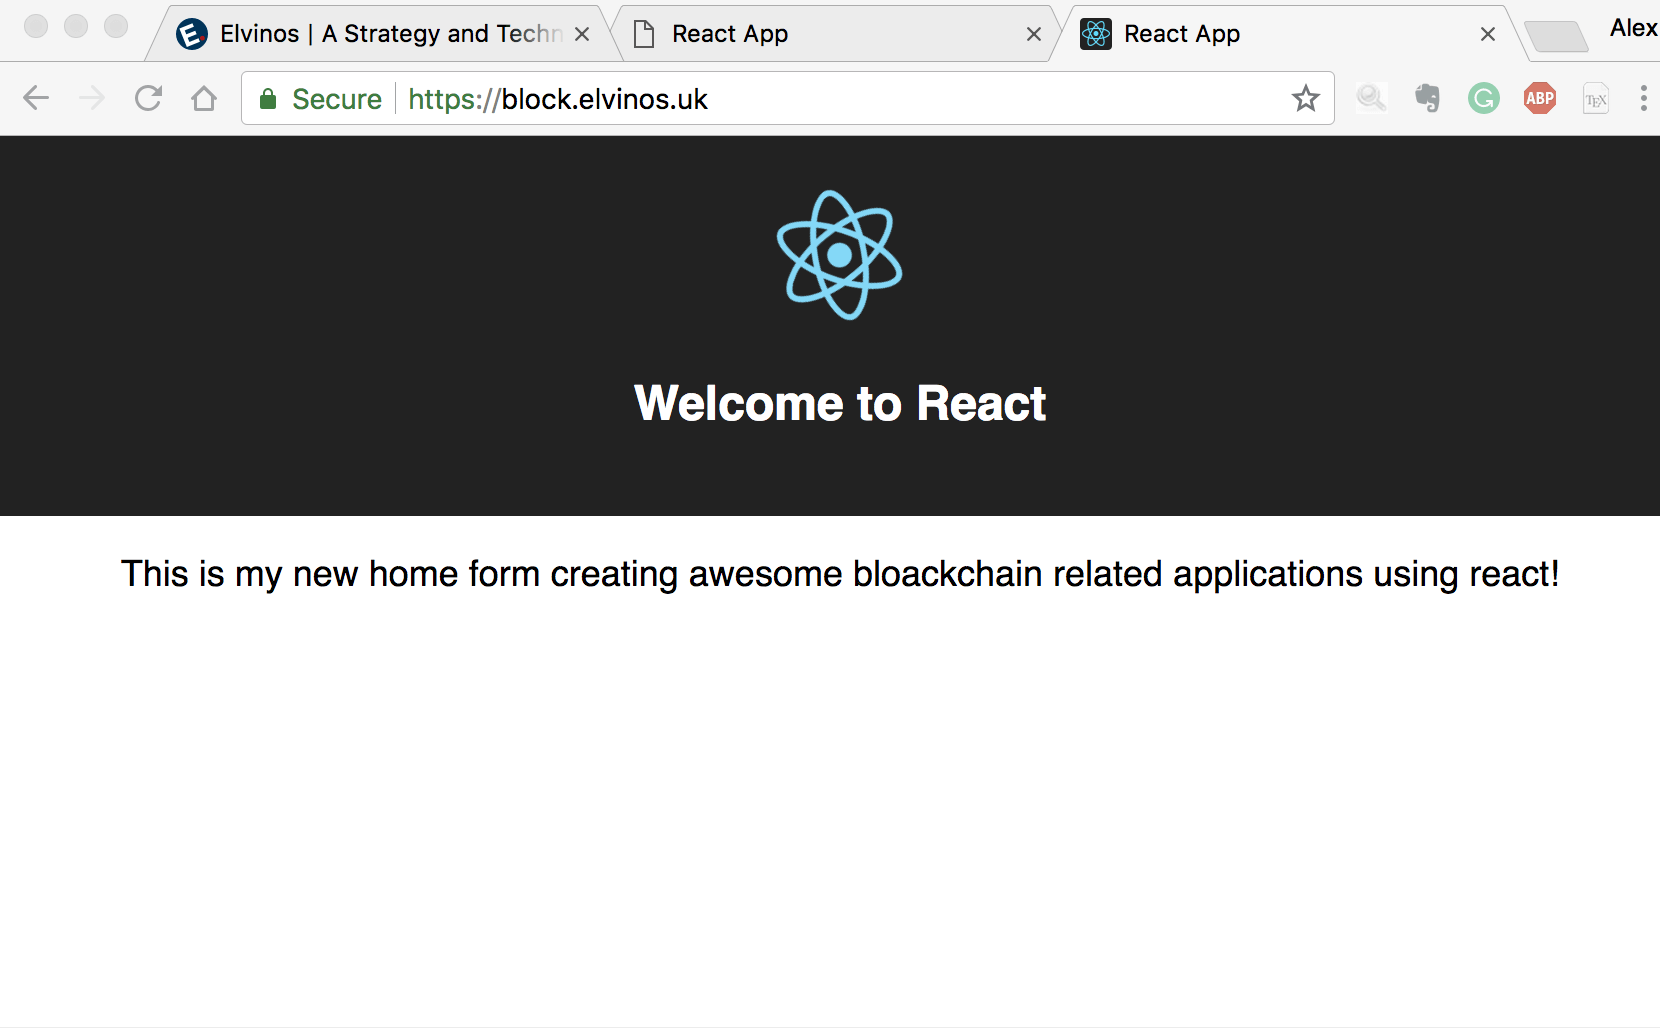 Block.elvinos.uk React app up and operational